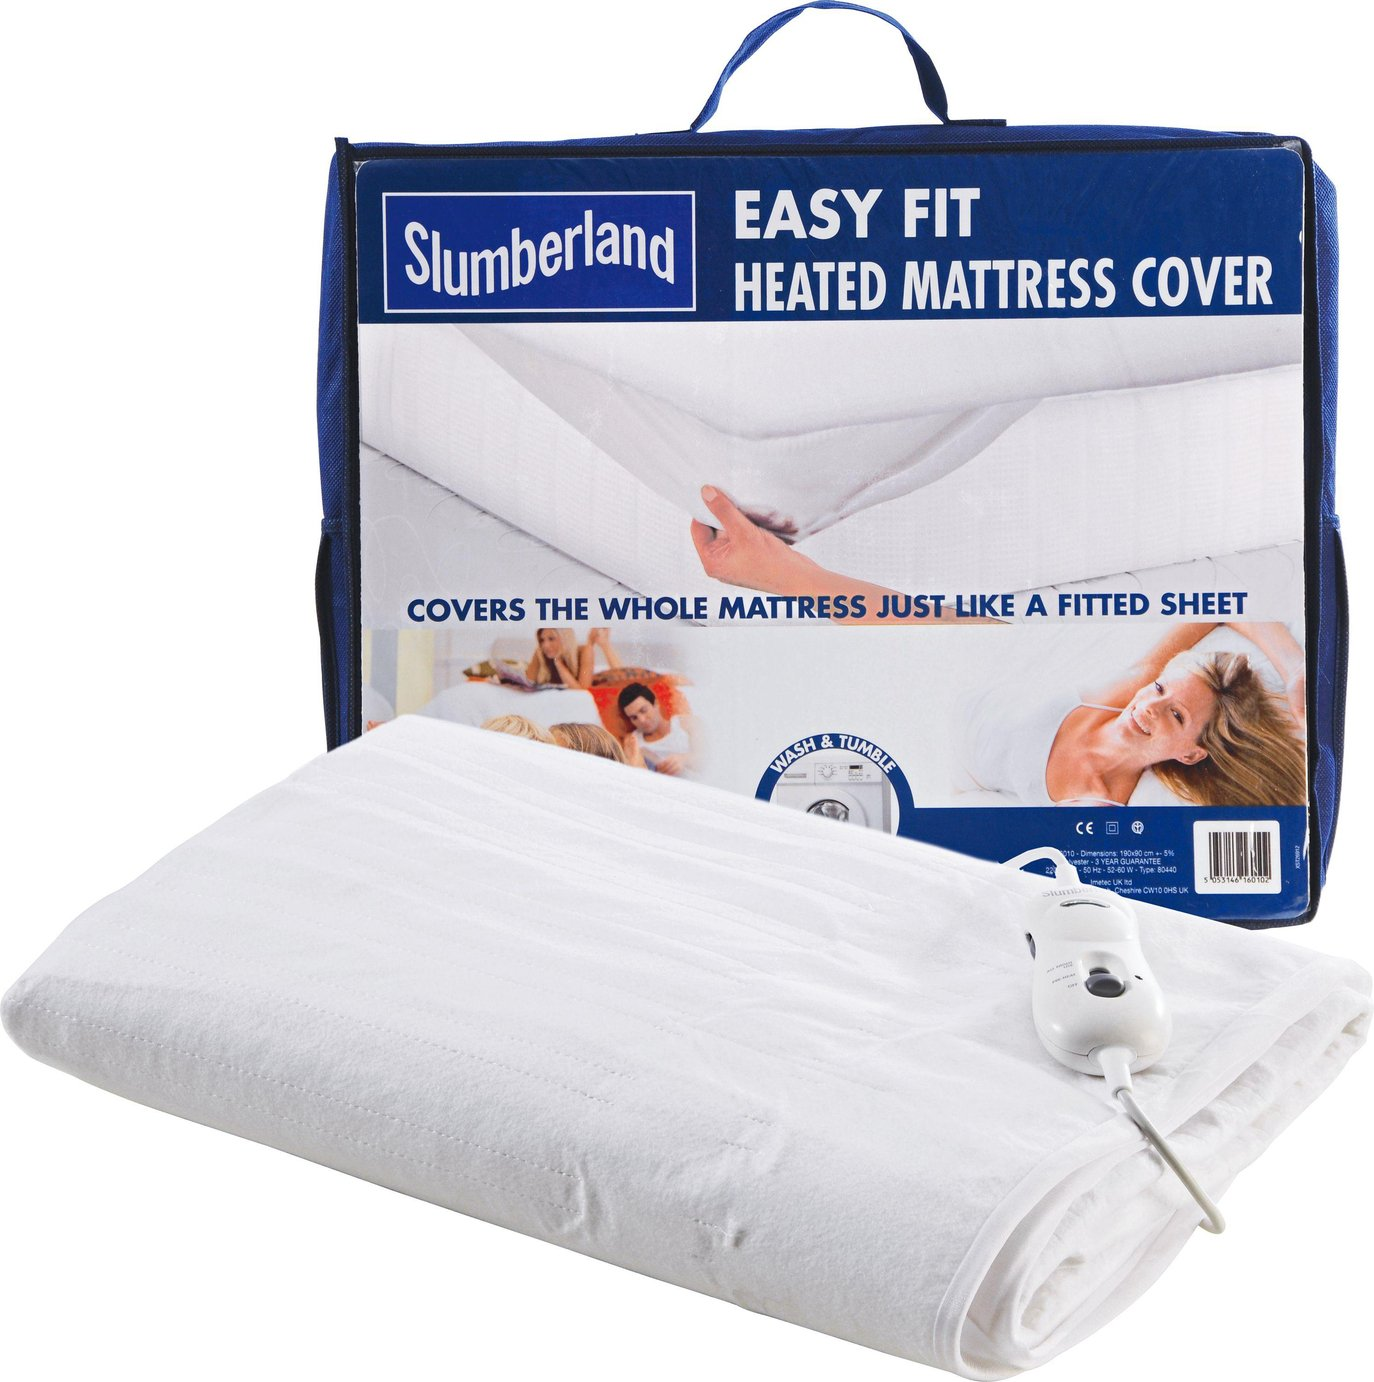 Slumberland Easy Fit Heated Mattress Cover - Double